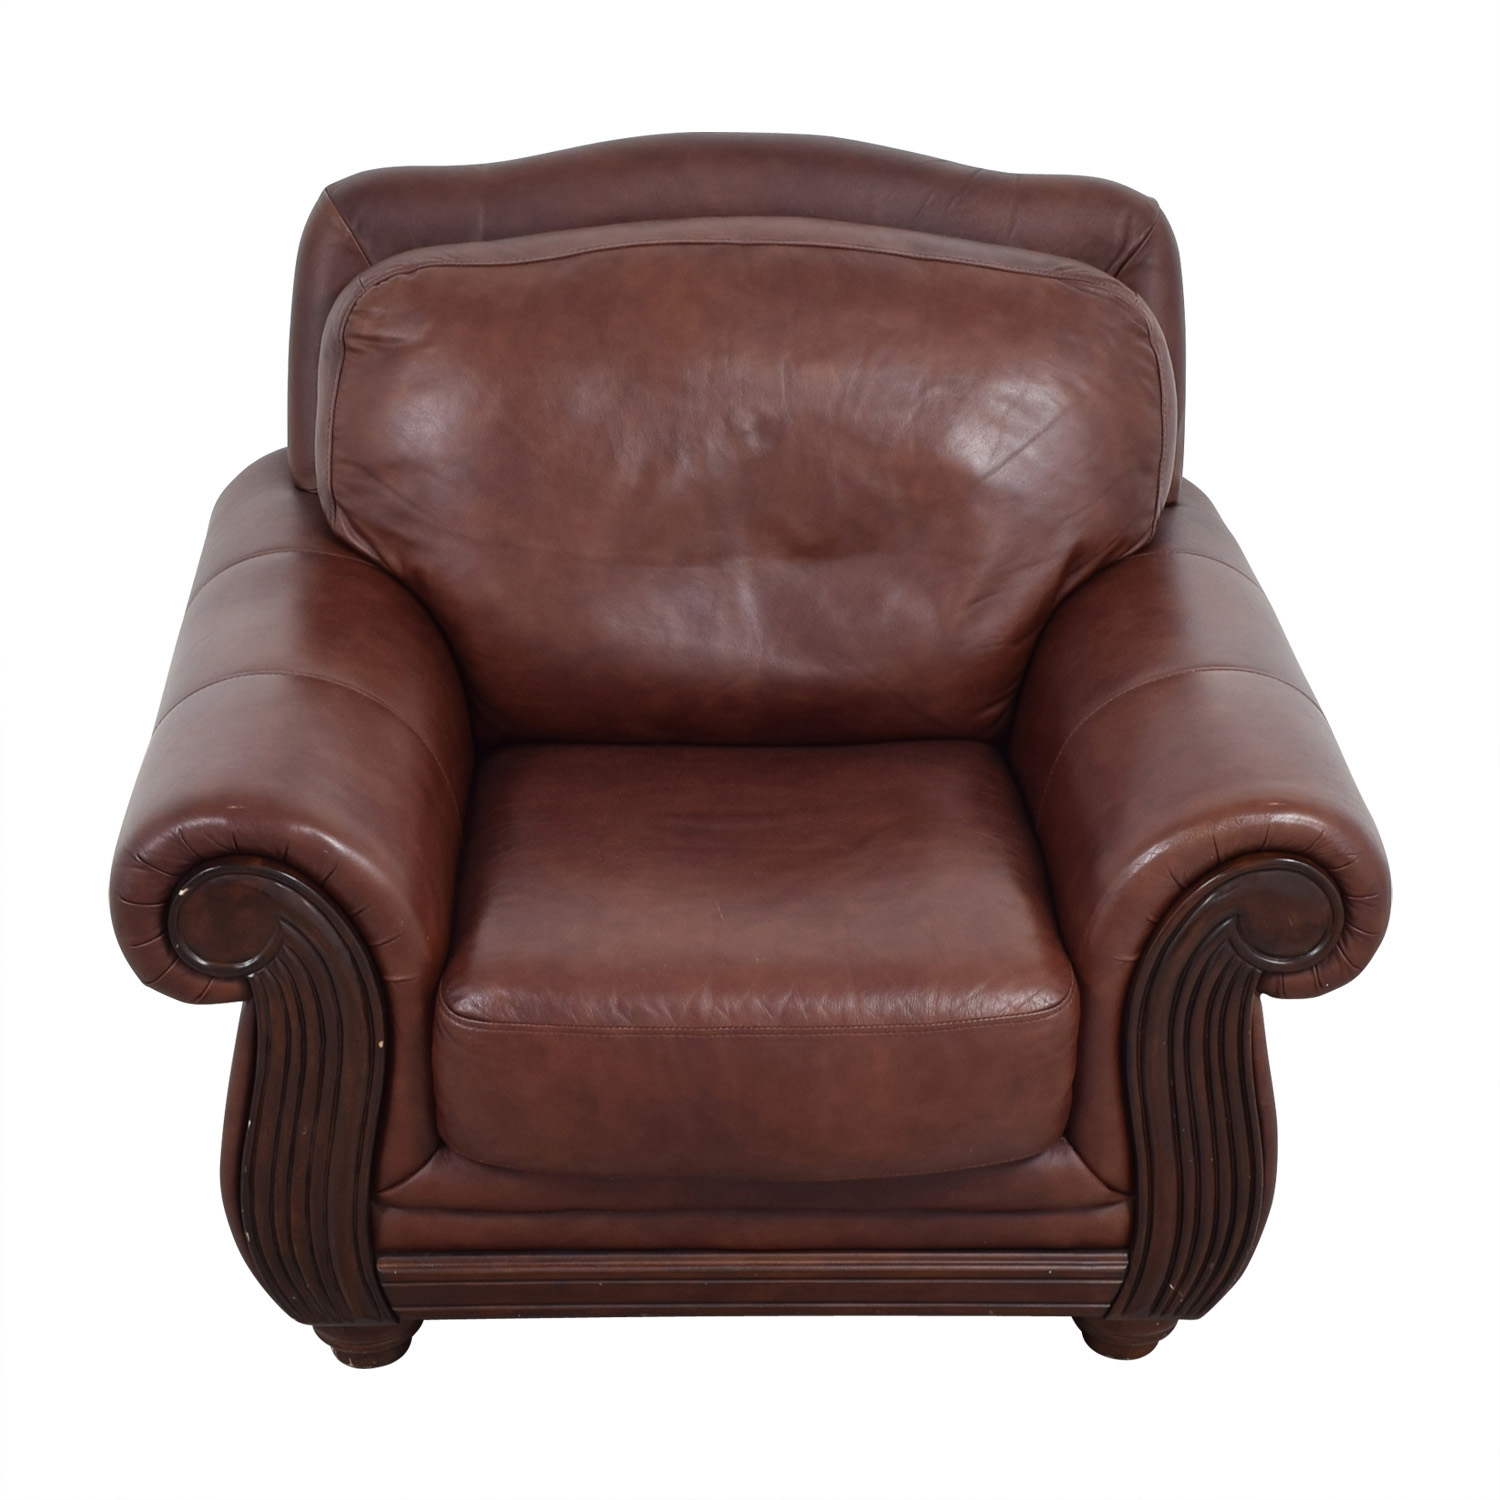 69 Off Rooms To Go Rooms To Go Brown Leather Accent